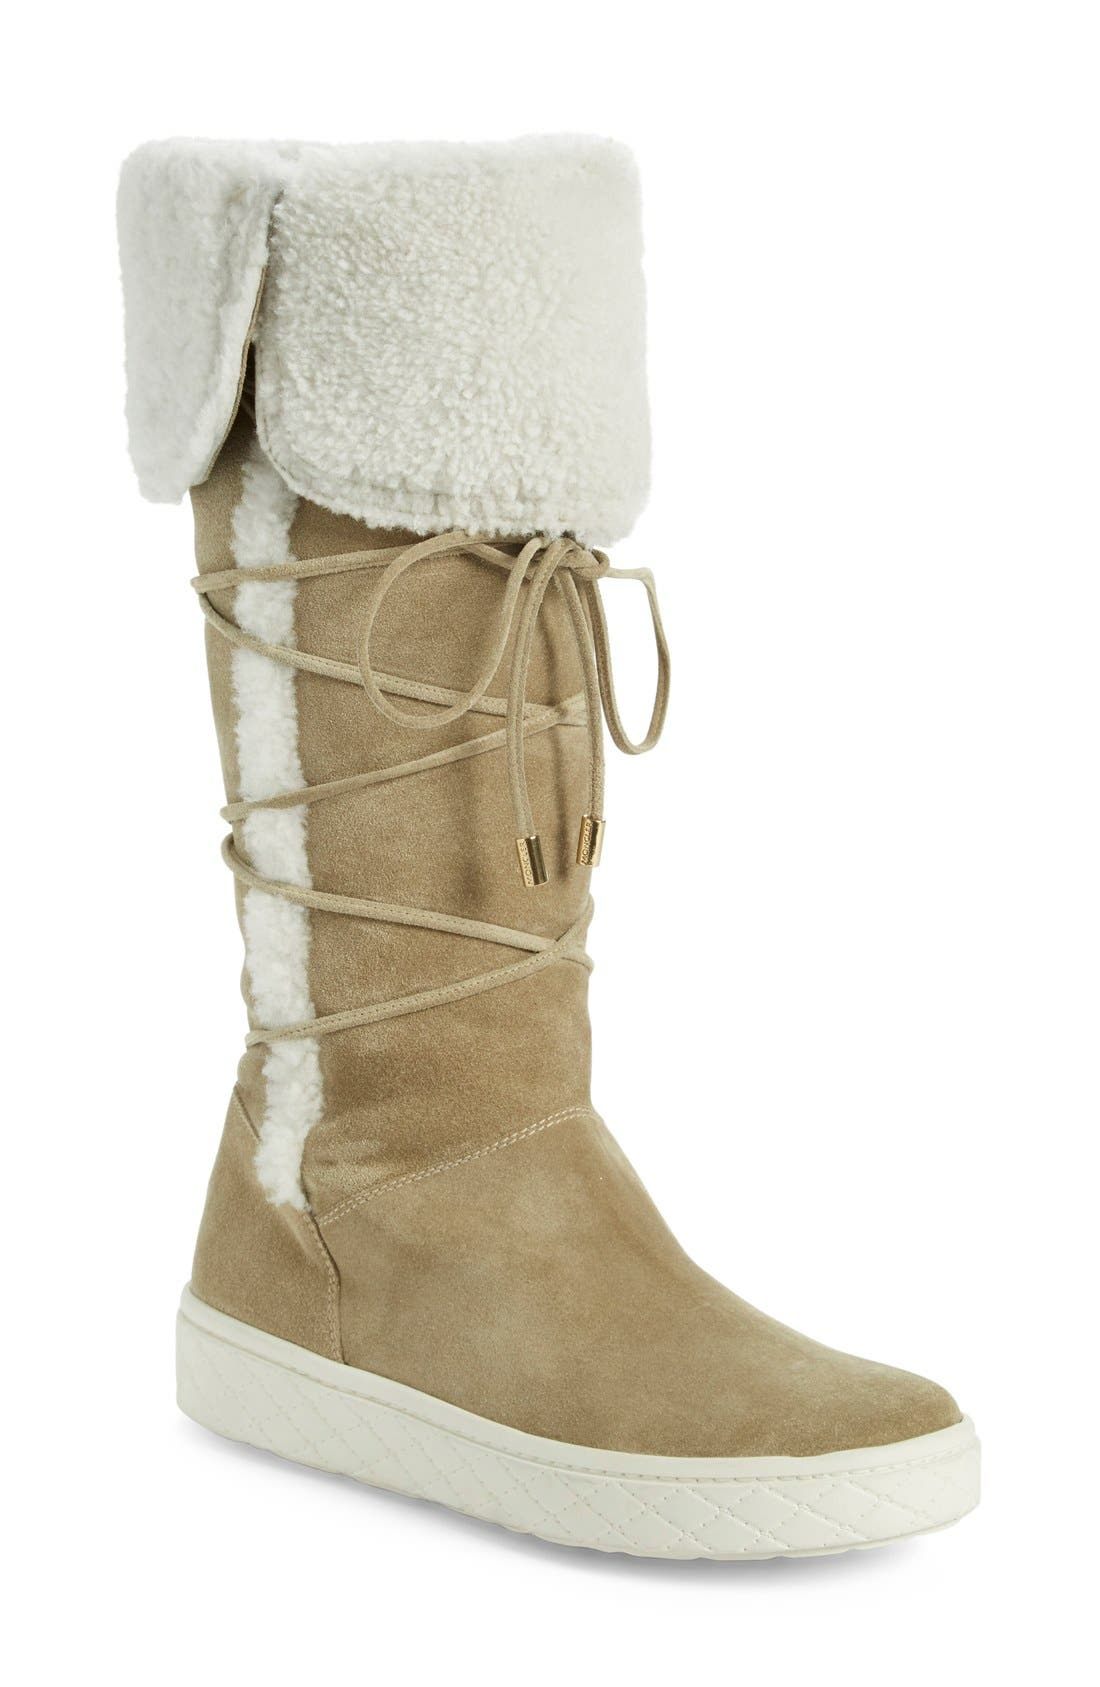 2018 Discount Madeleine Stivale' Genuine Shearling Tall Boot Women Womens Tan Suede Moncler Womens Designer Shoes